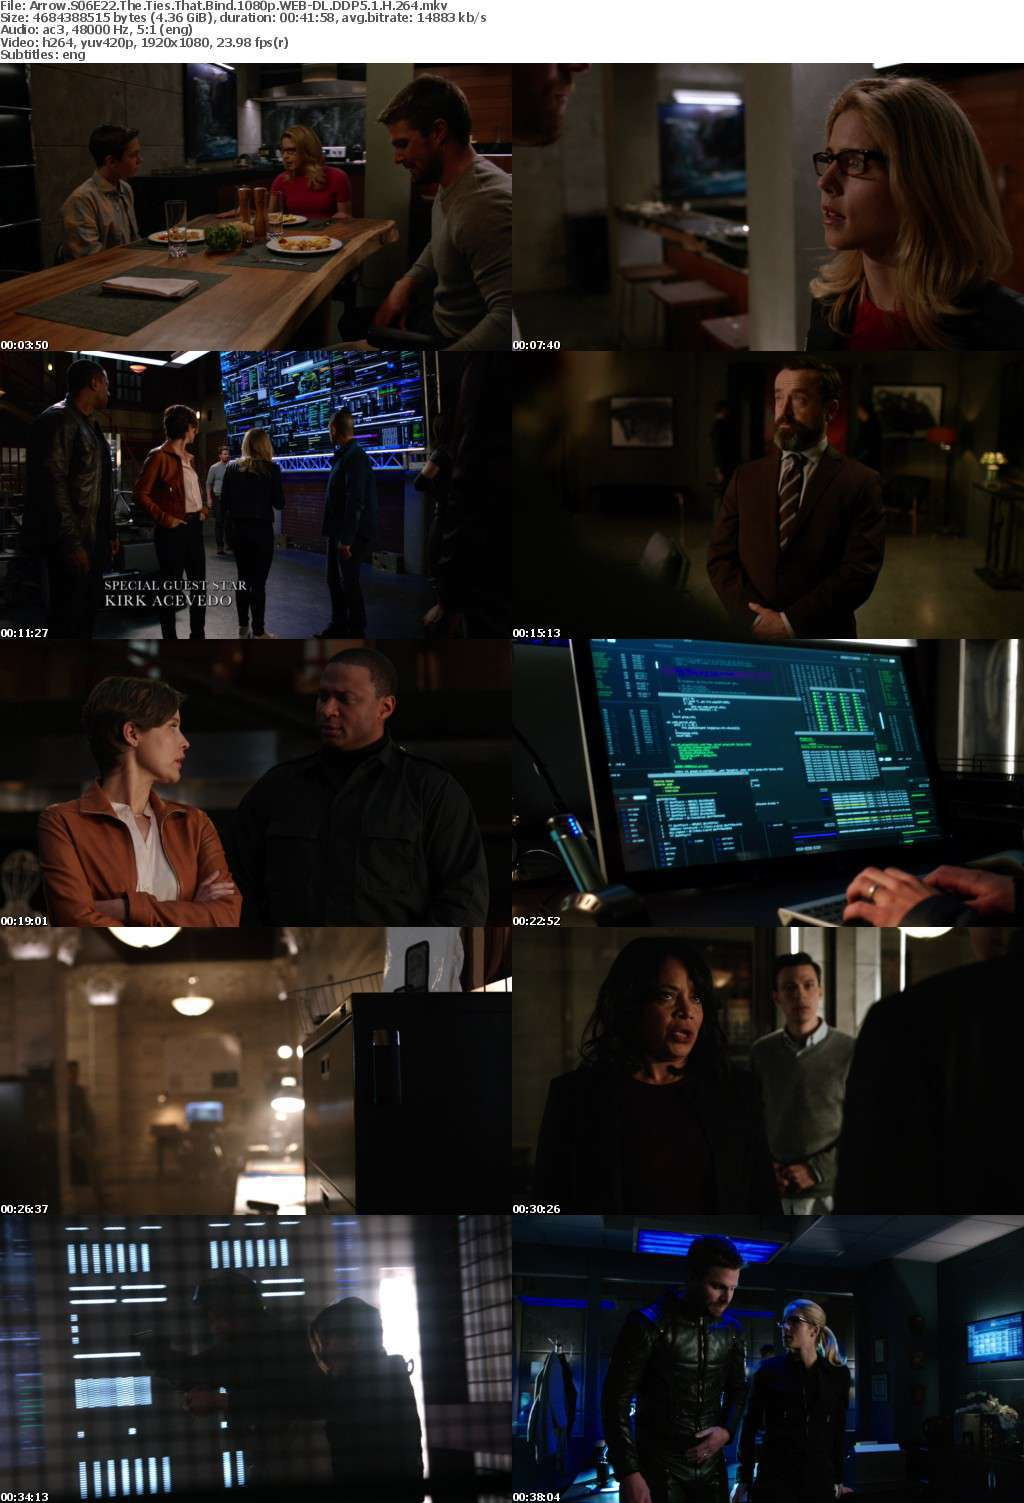 Arrow S06E22 The Ties That Bind 1080p WEB-DL DDP5 1 H 264